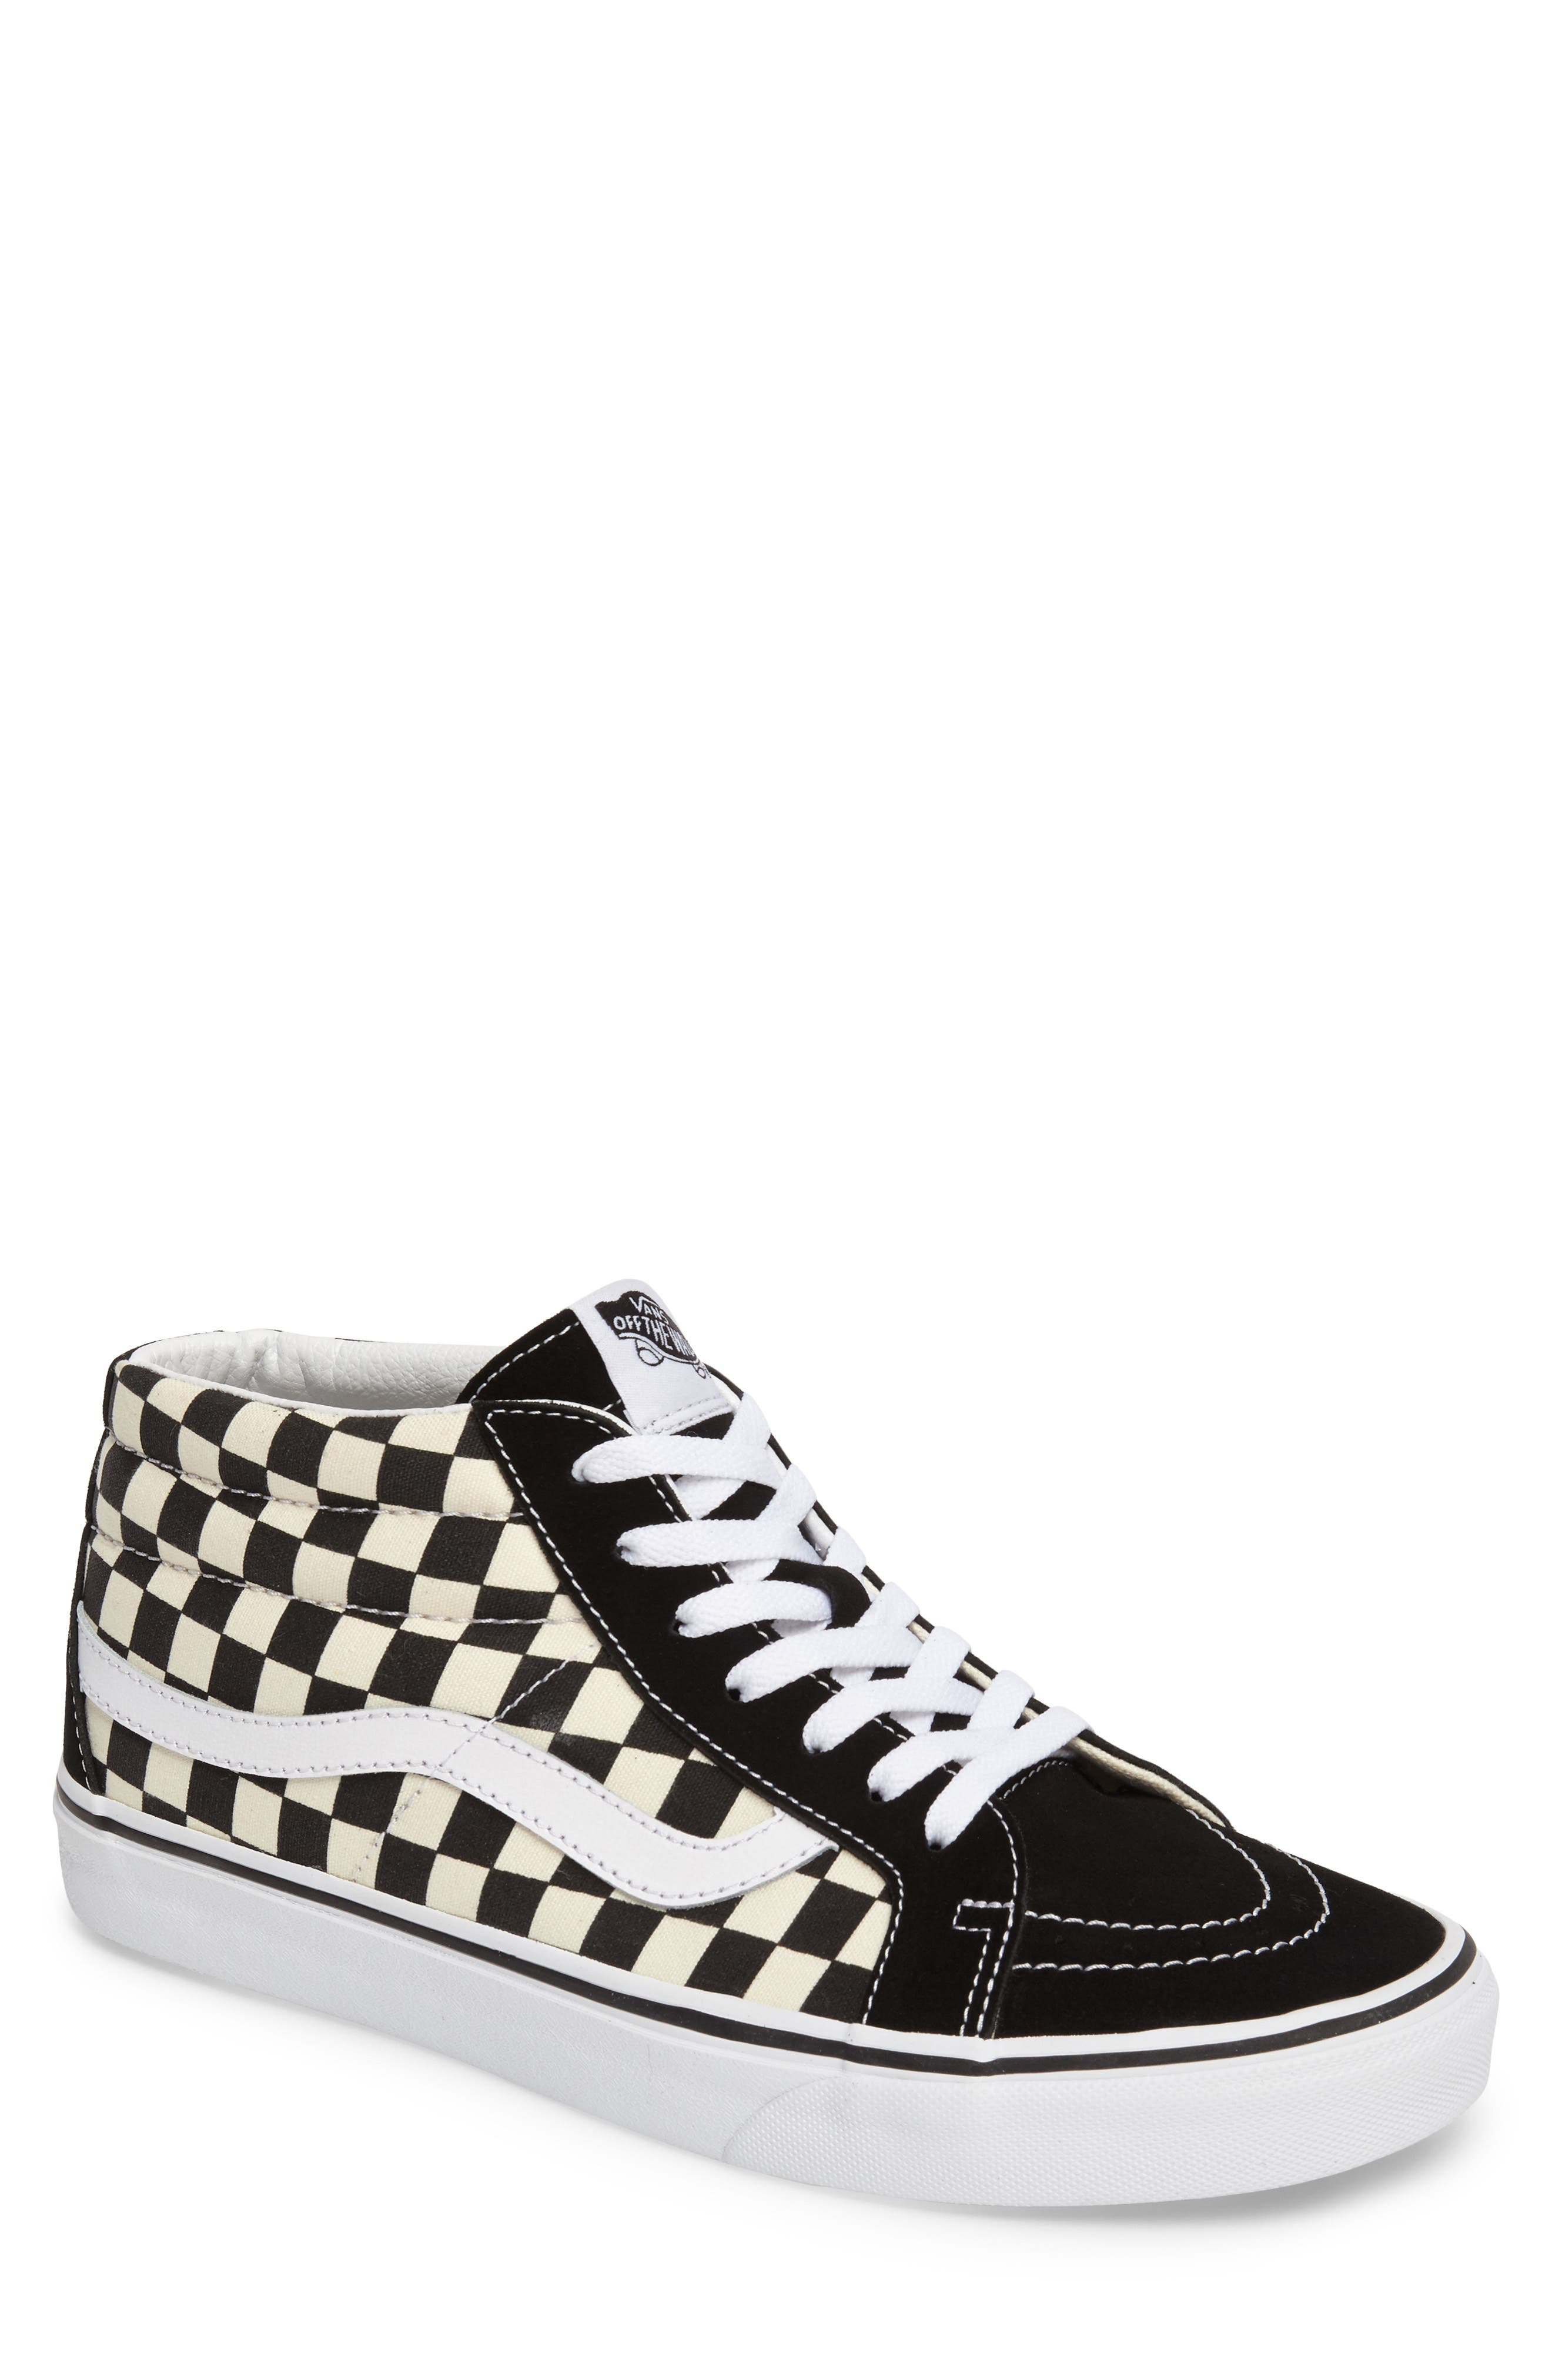 Sk8-Mid Reissue Sneaker,                             Main thumbnail 1, color,                             White Checker Canvas/ Suede